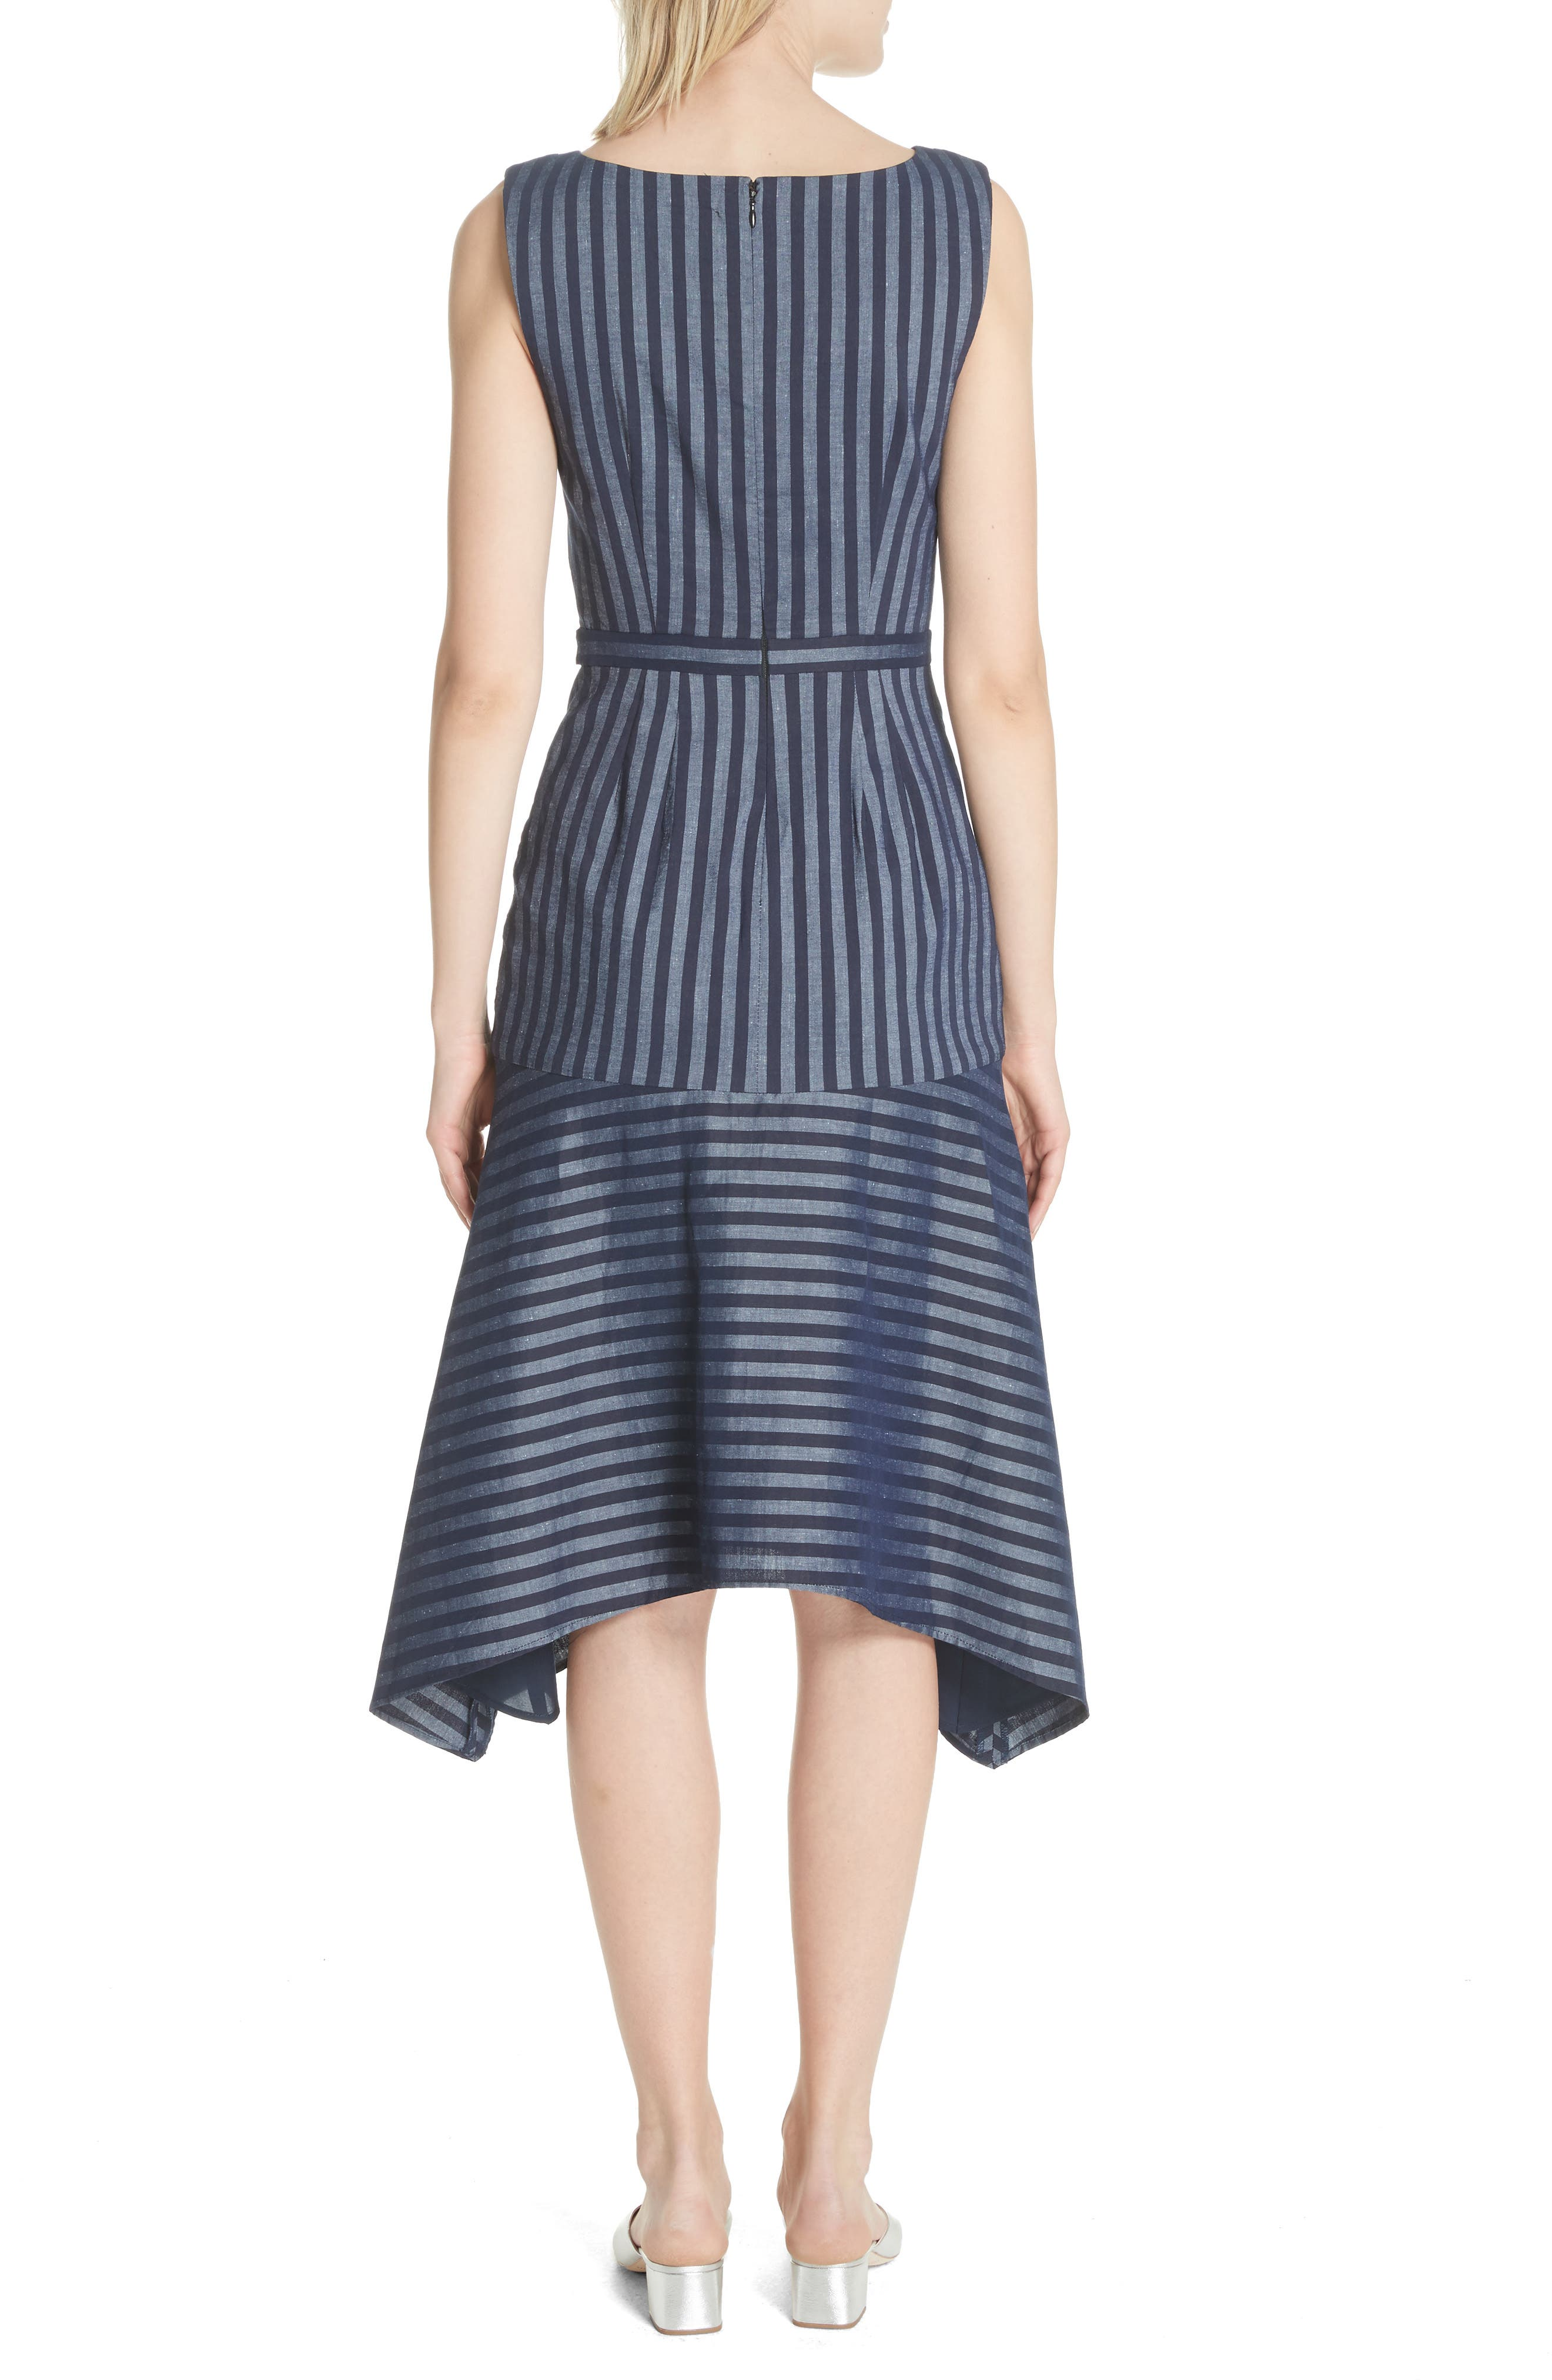 TRACY REESE,                             Directional Stripe A-Line Dress,                             Alternate thumbnail 2, color,                             417